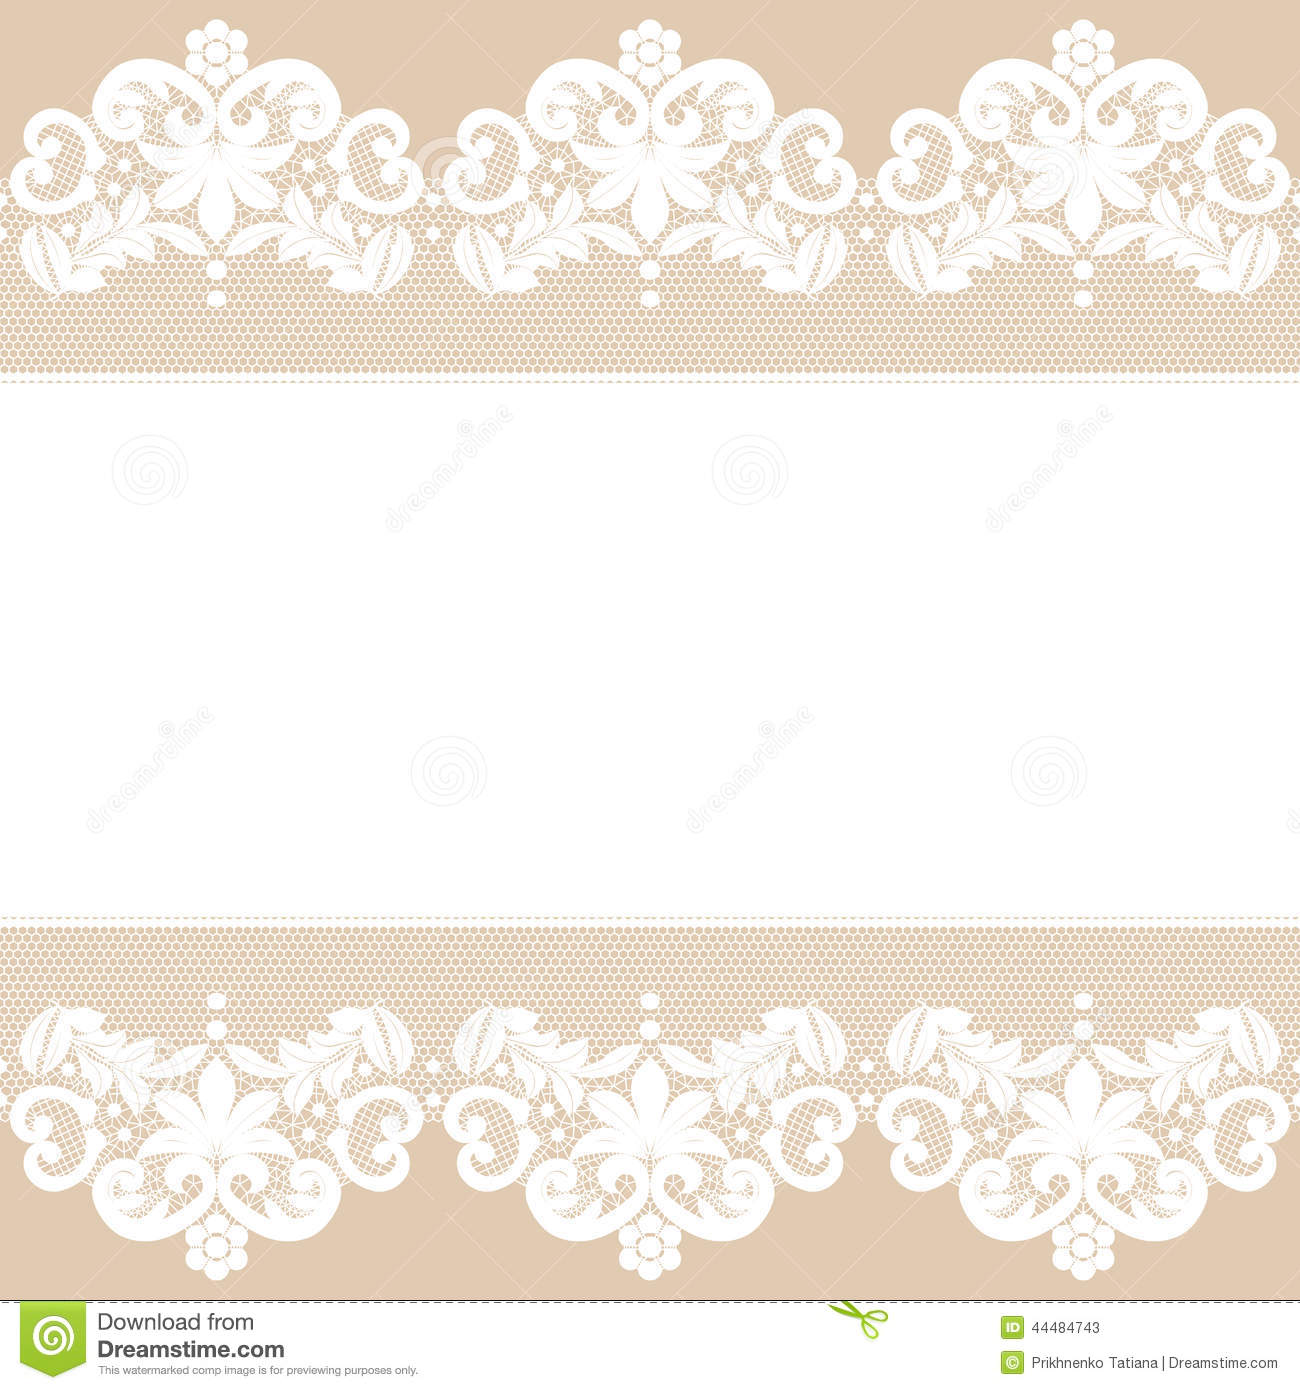 Template for wedding, invitation or greeting card with white lace ...